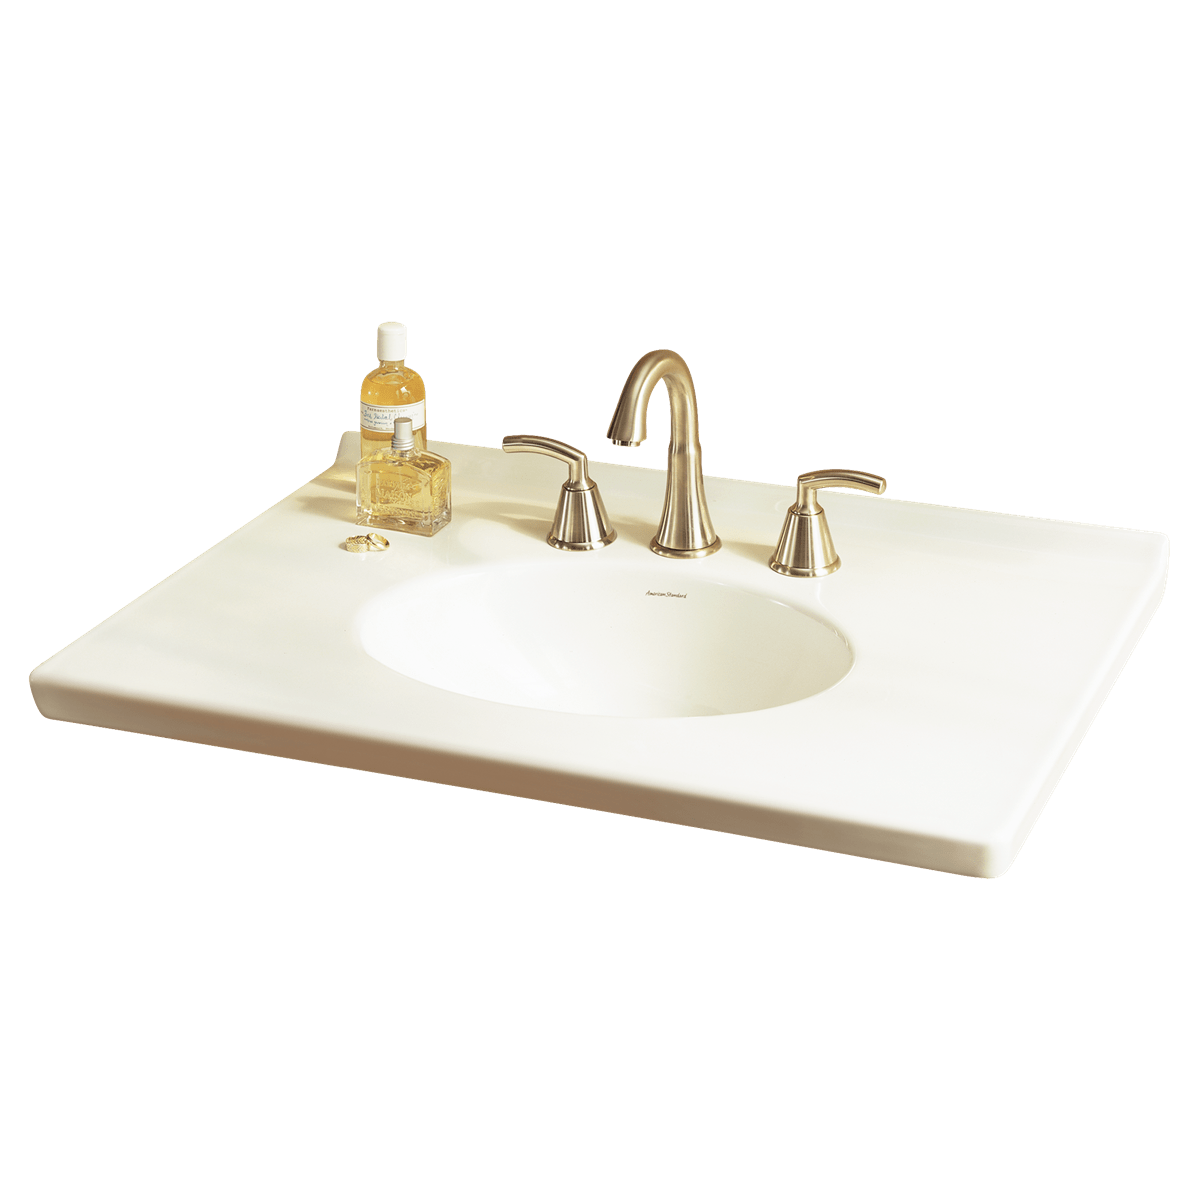 AMERICAN STANDARD 7820.020 PORTSMOUTH 31-1/8 X 22-7/8 INCH VANITY TOP IN WHITE FOR 9210.030 VANITY